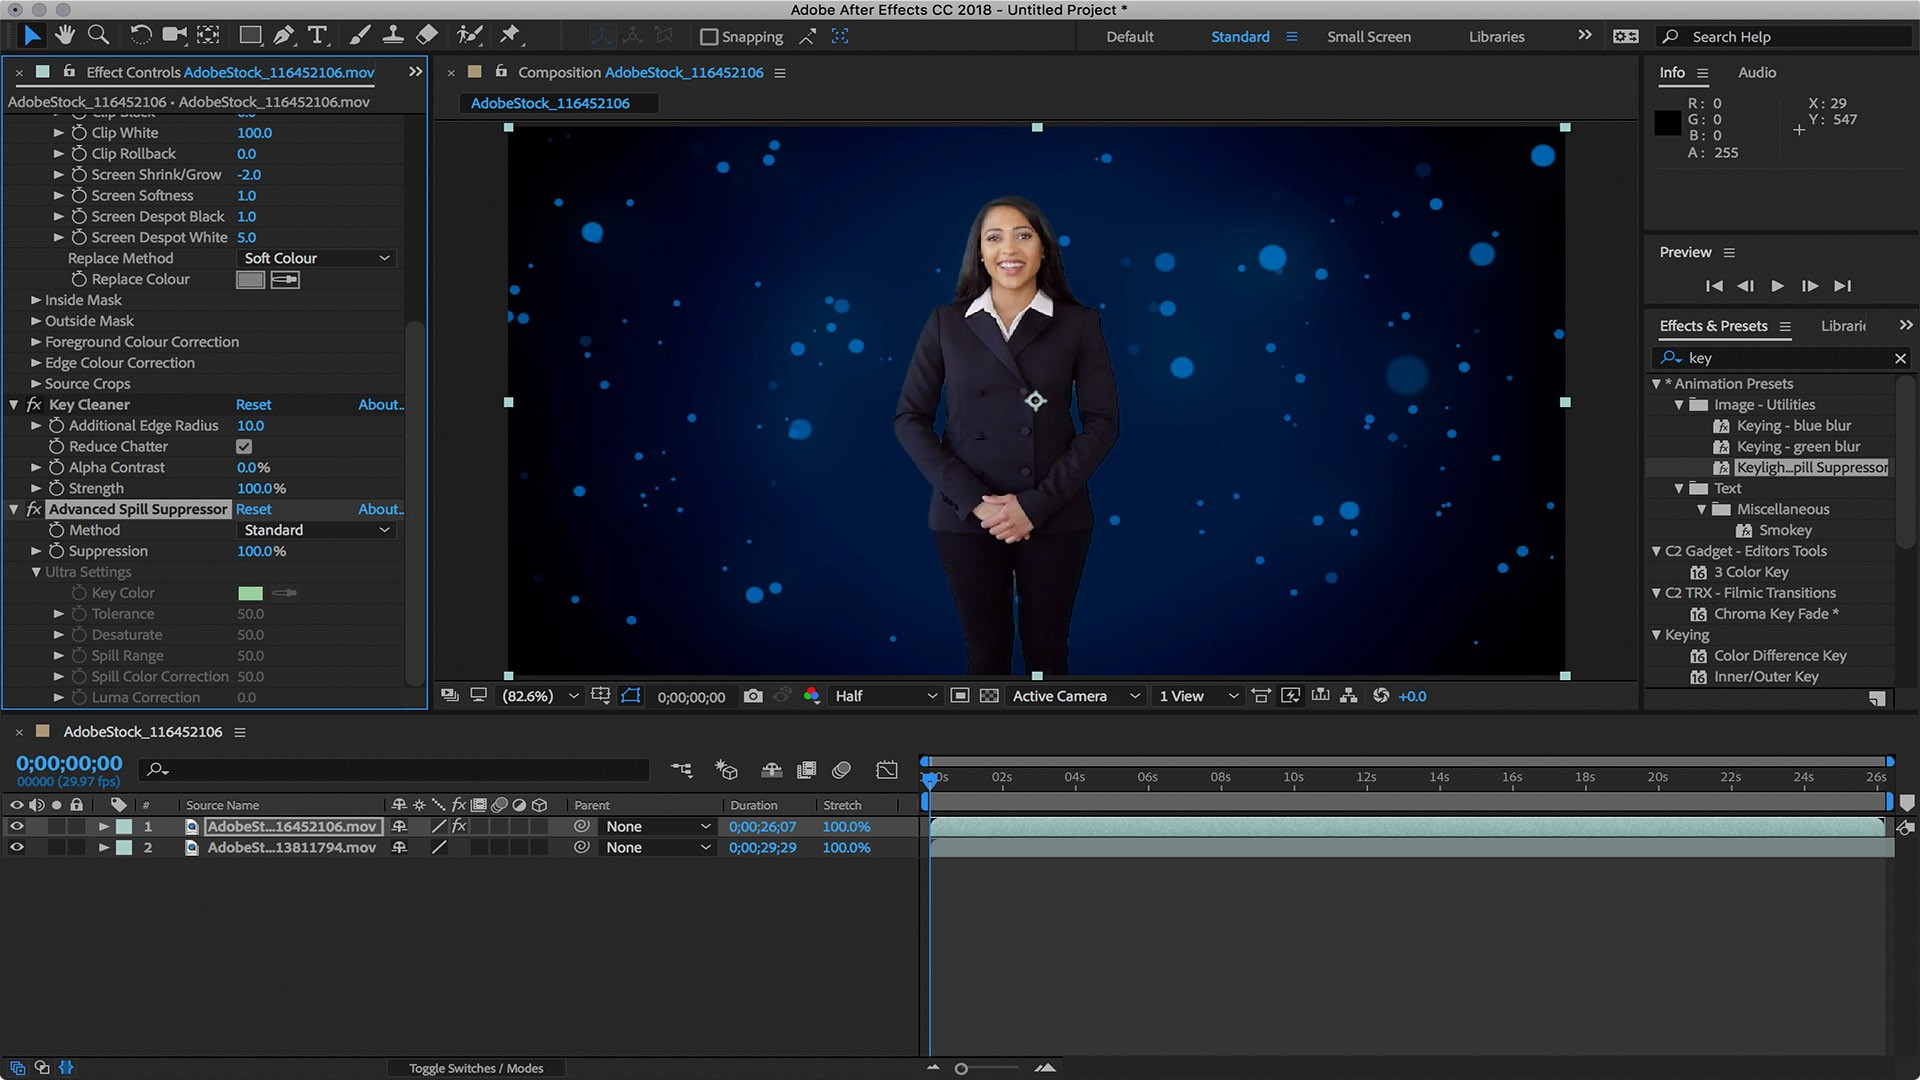 Adobe after effects 2018 cc download